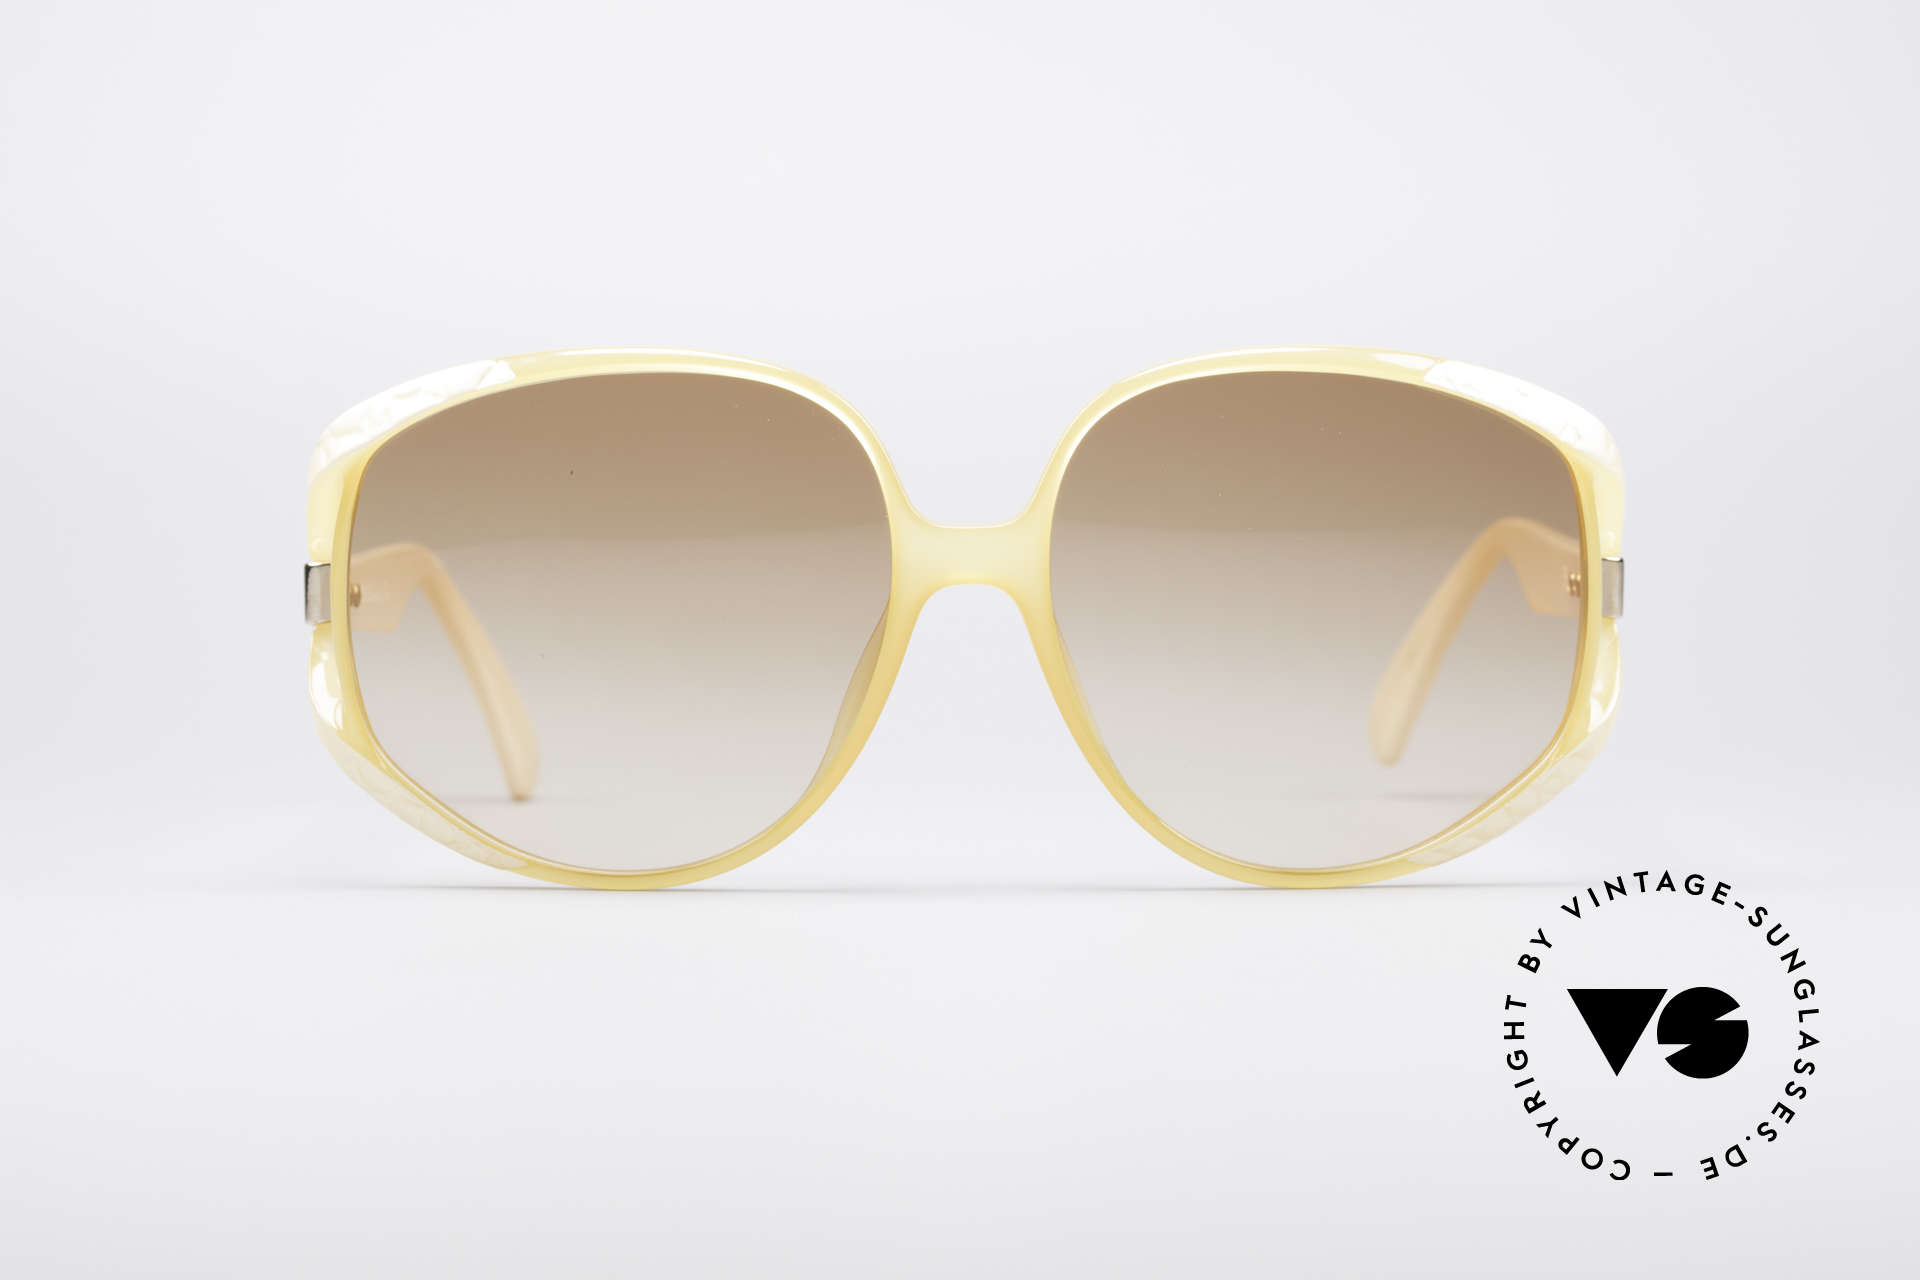 Christian Dior 2320 Rare 80's Ladies XL Sunglasses, flashy oversized frame with huge gradient lenses, Made for Women